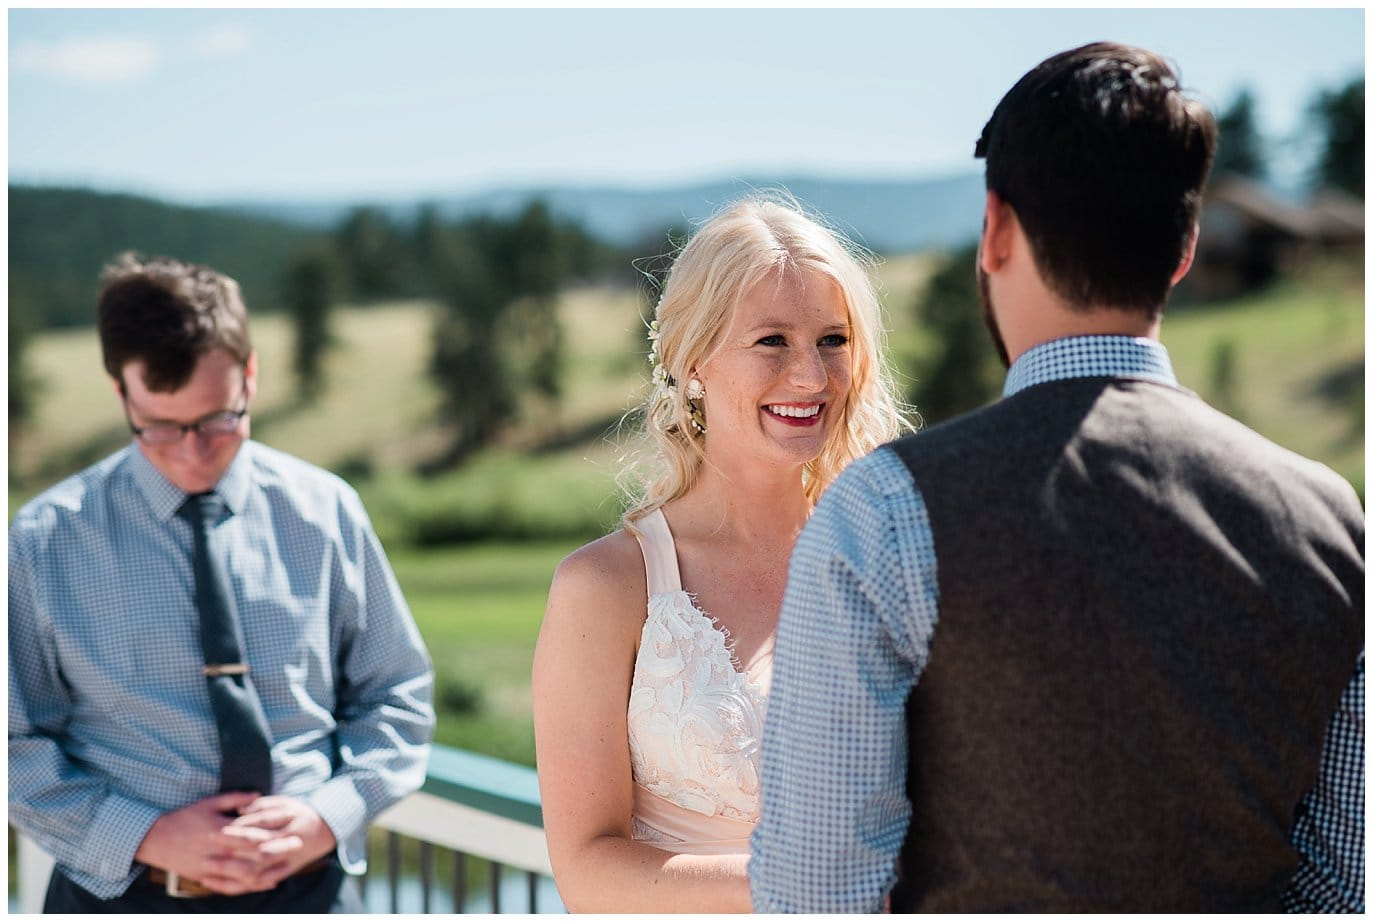 bride and groom say vows on Gazebo at Deer Creek Valley Ranch wedding by Conifer Wedding Photographer Jennie Crate Photographer